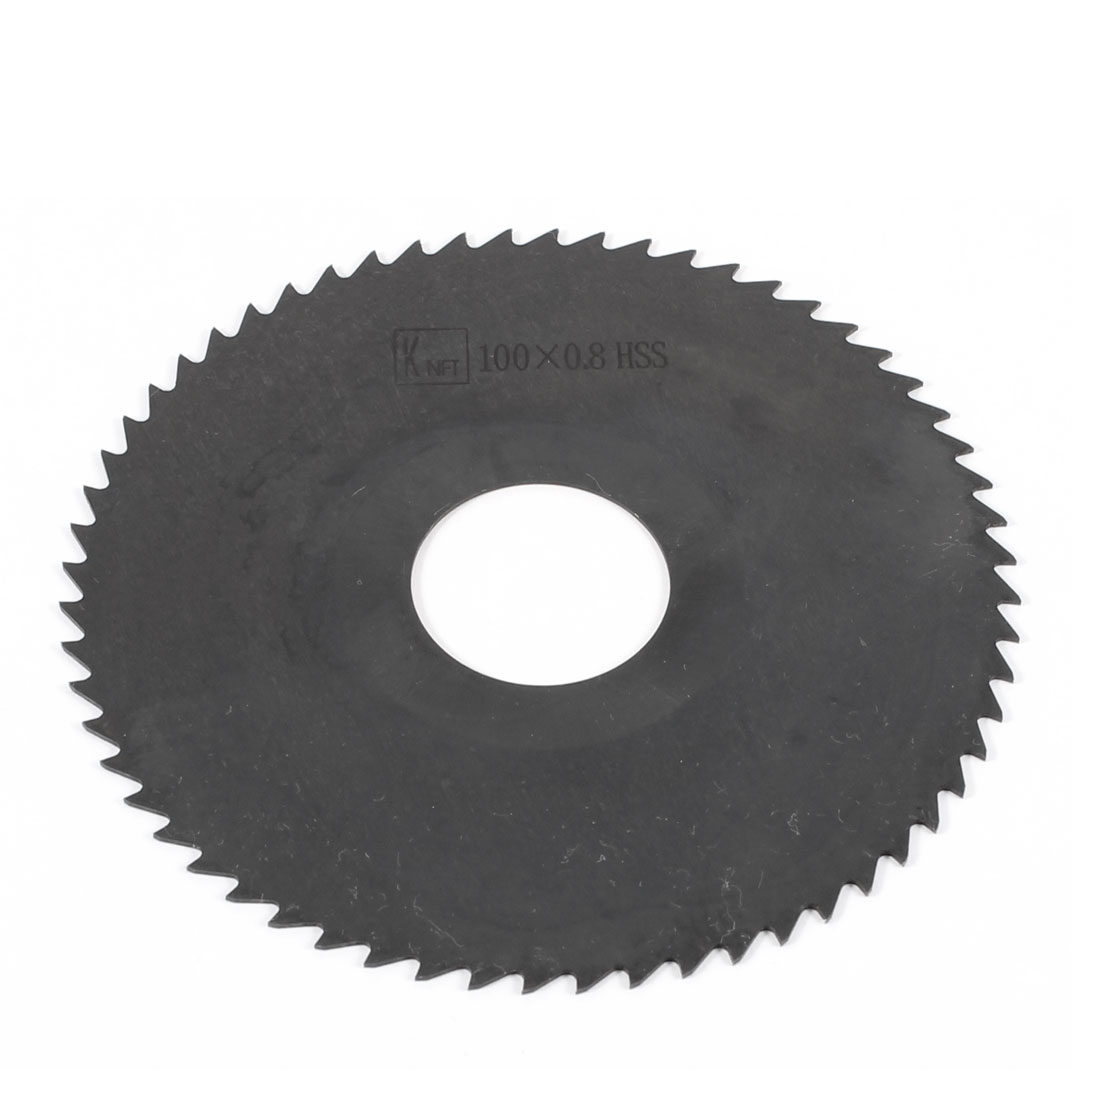 Hand Tool 100mm x 27mm x 0.8mm 60 Peg Teeth HSS Slitting Saw Cutter